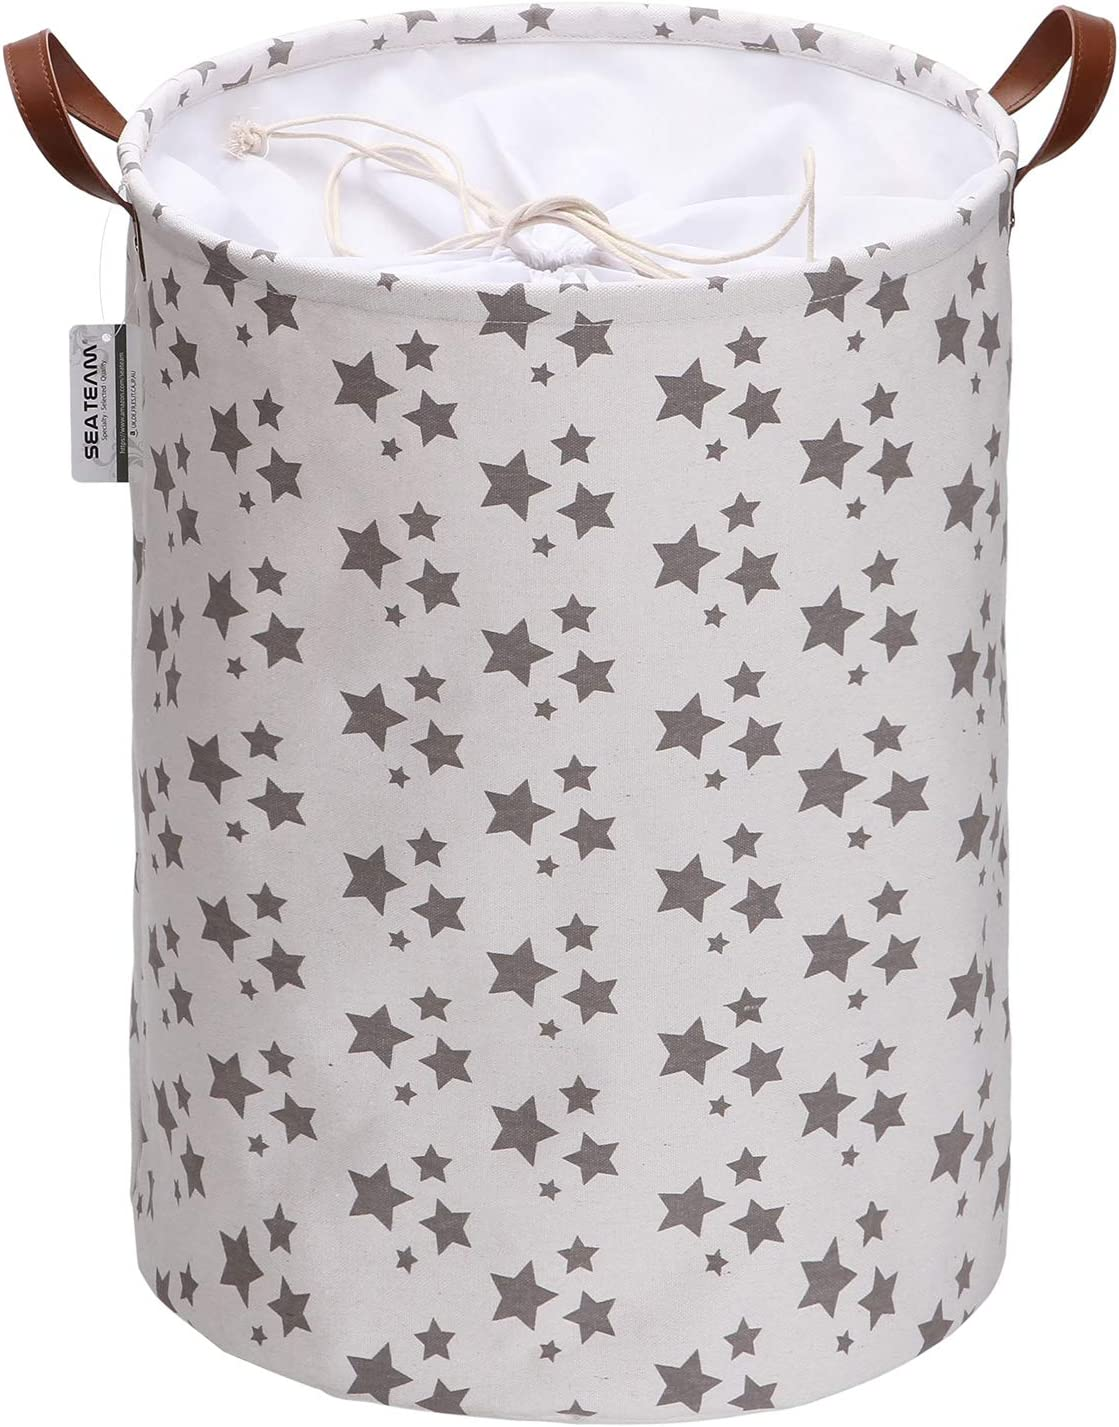 Sea Team Star Pattern Laundry Hamper Canvas Fabric Laundry Basket Collapsible Storage Bin with PU Leather Handles and Drawstring Closure, 19.7 by 15.7 inches, Waterproof Inner, White